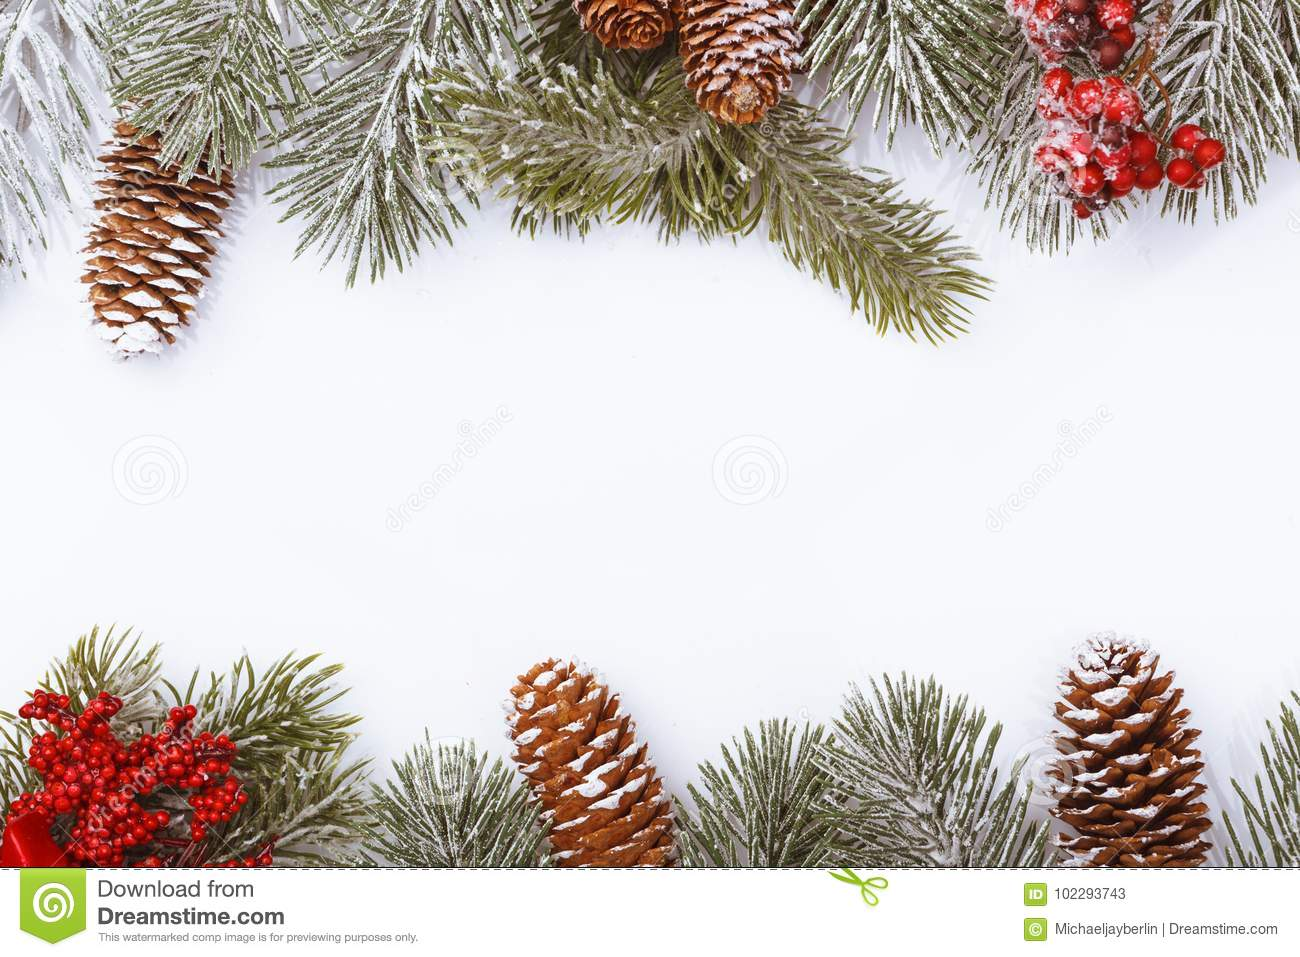 Christmas frame border on white, branches, cones and red berries